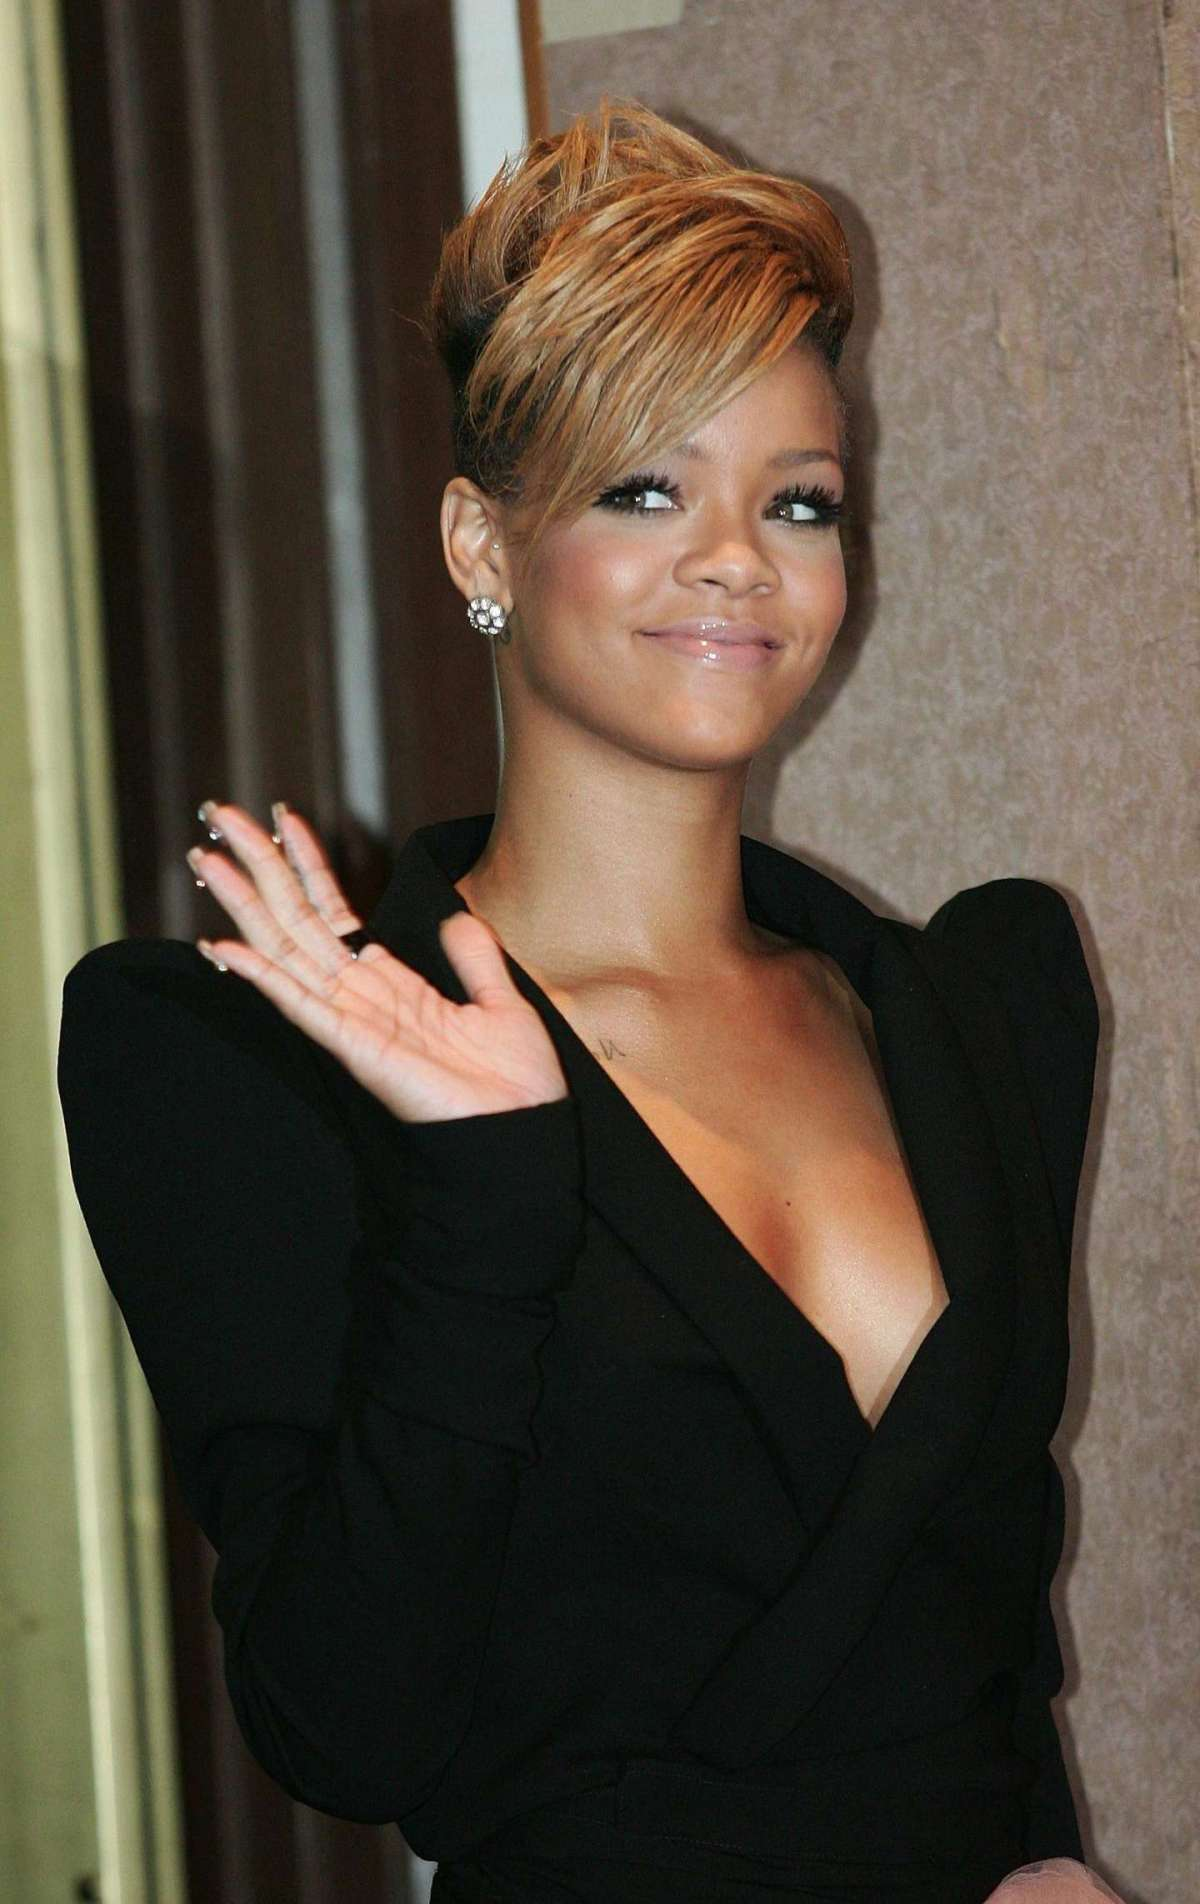 press conference for her new album Rated R - Seoul - 2010